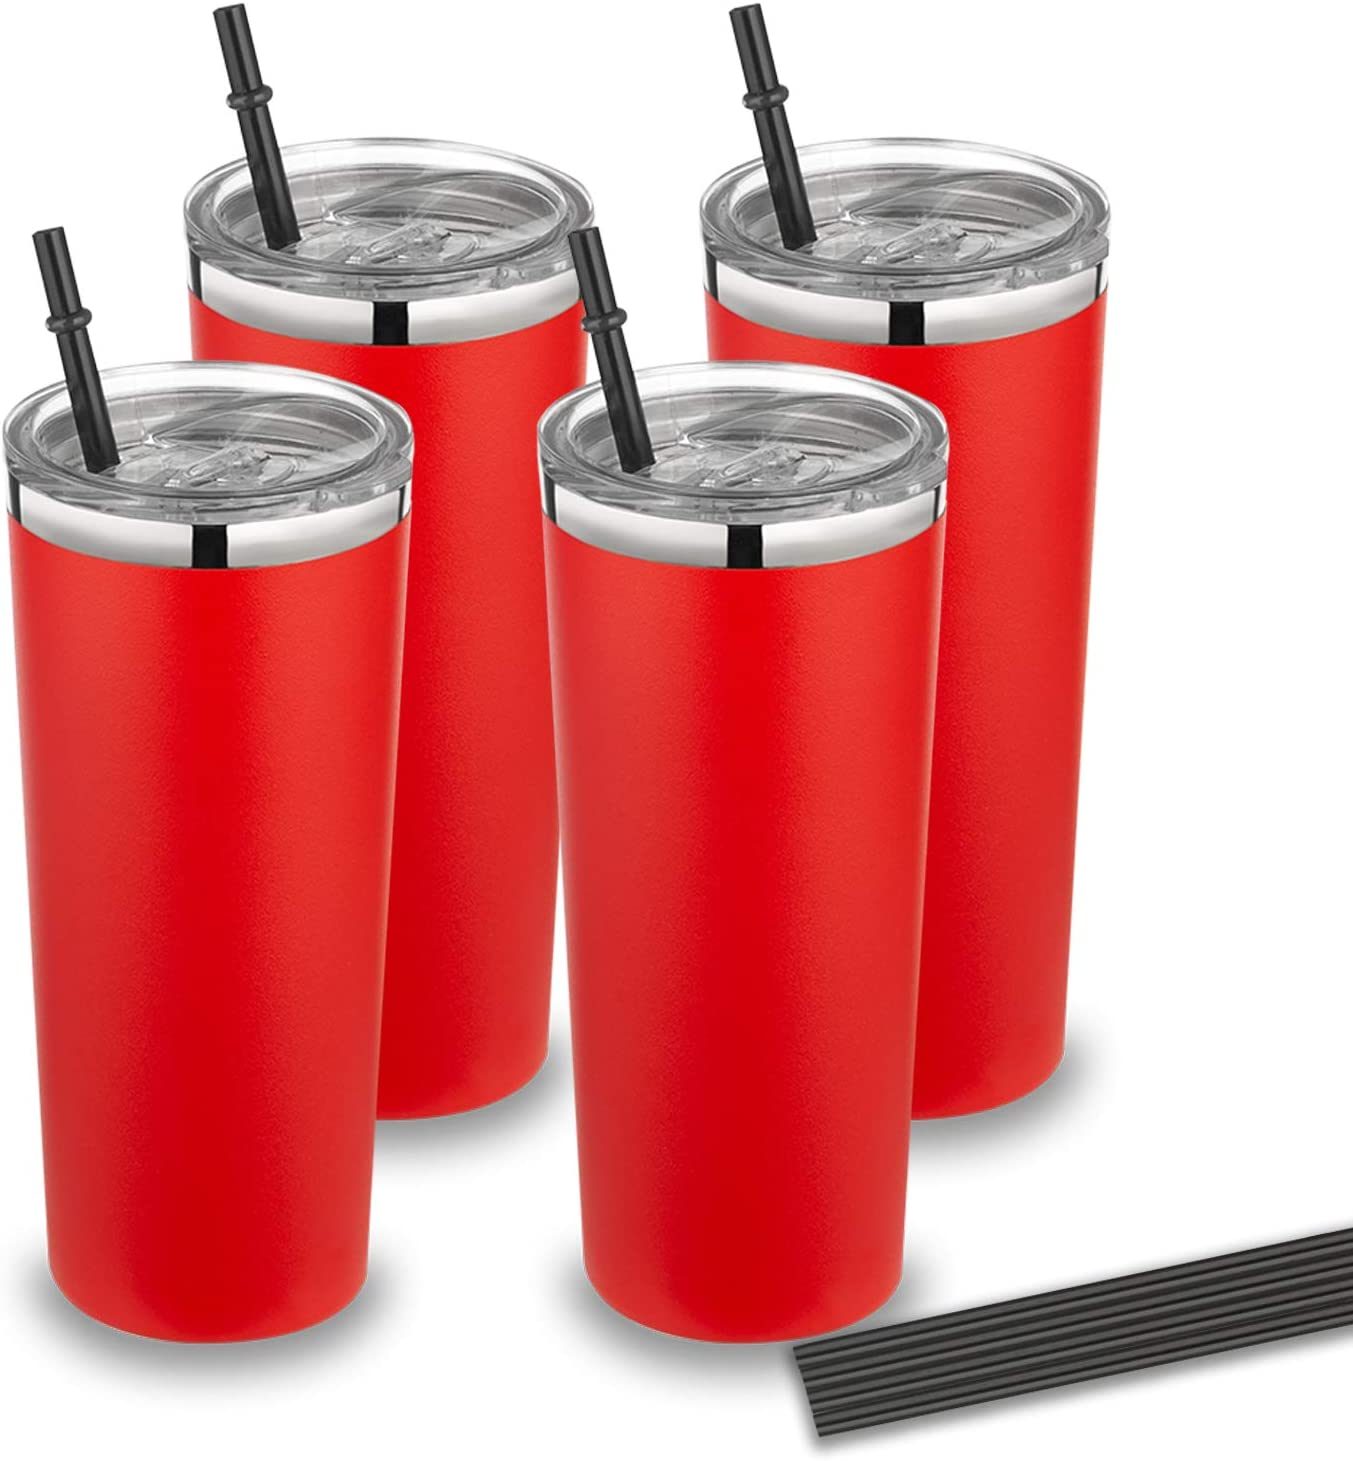 22 oz Trumber Stainless Steel Travel Coffee Mug with lid and straw,Vacuum Insulated Tumbler cup for Home, Office, Outdoor Works Great for Ice Drinks and Hot Beverage (Canyon Red, 4pack)